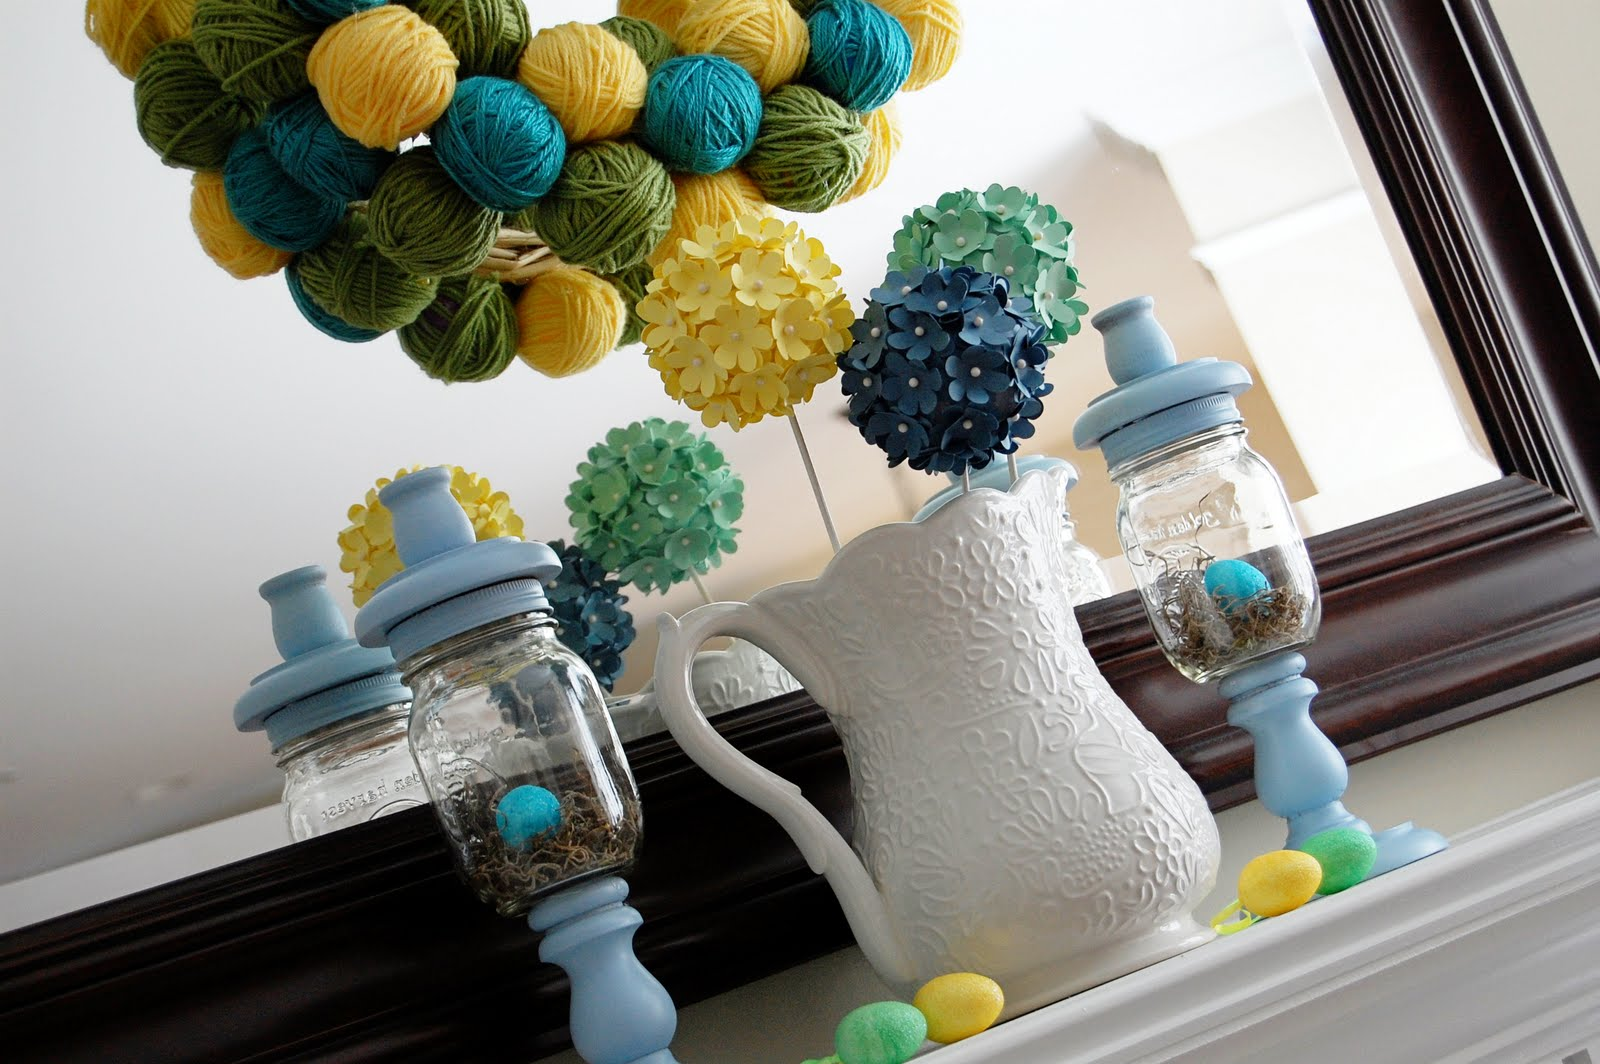 Alex m lynch easter decoration ideas for Easter decorations ideas for the home